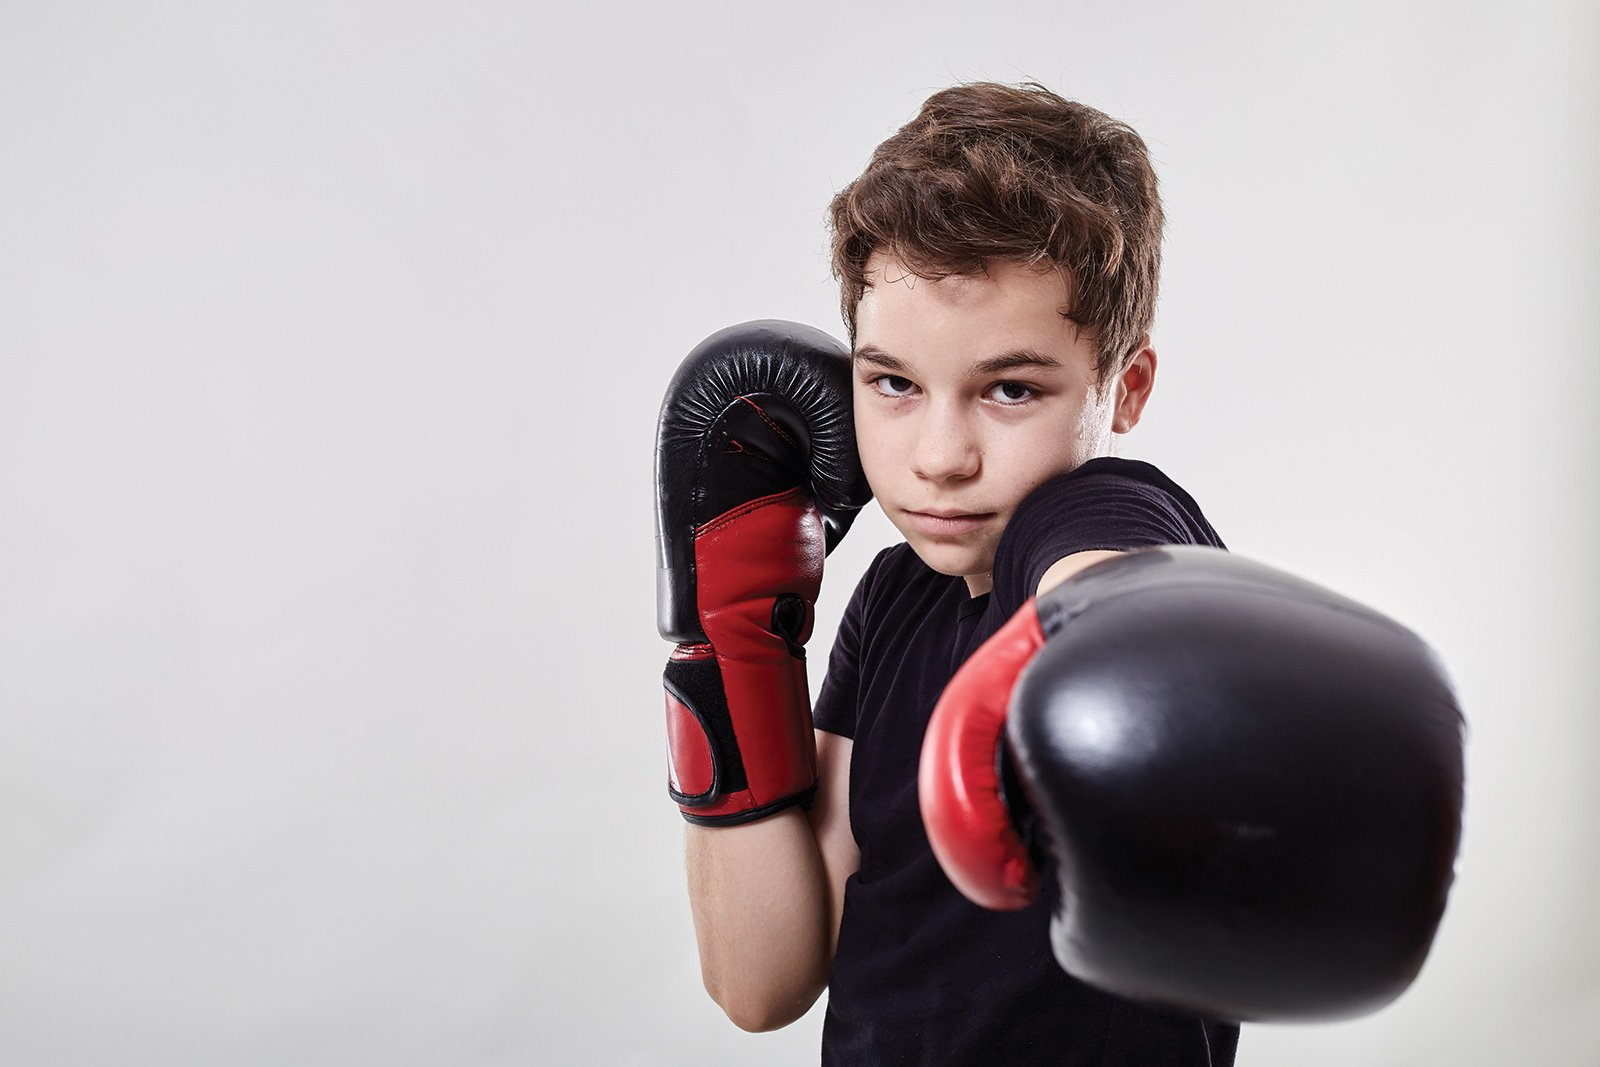 hands down martial arts youth kickboxing